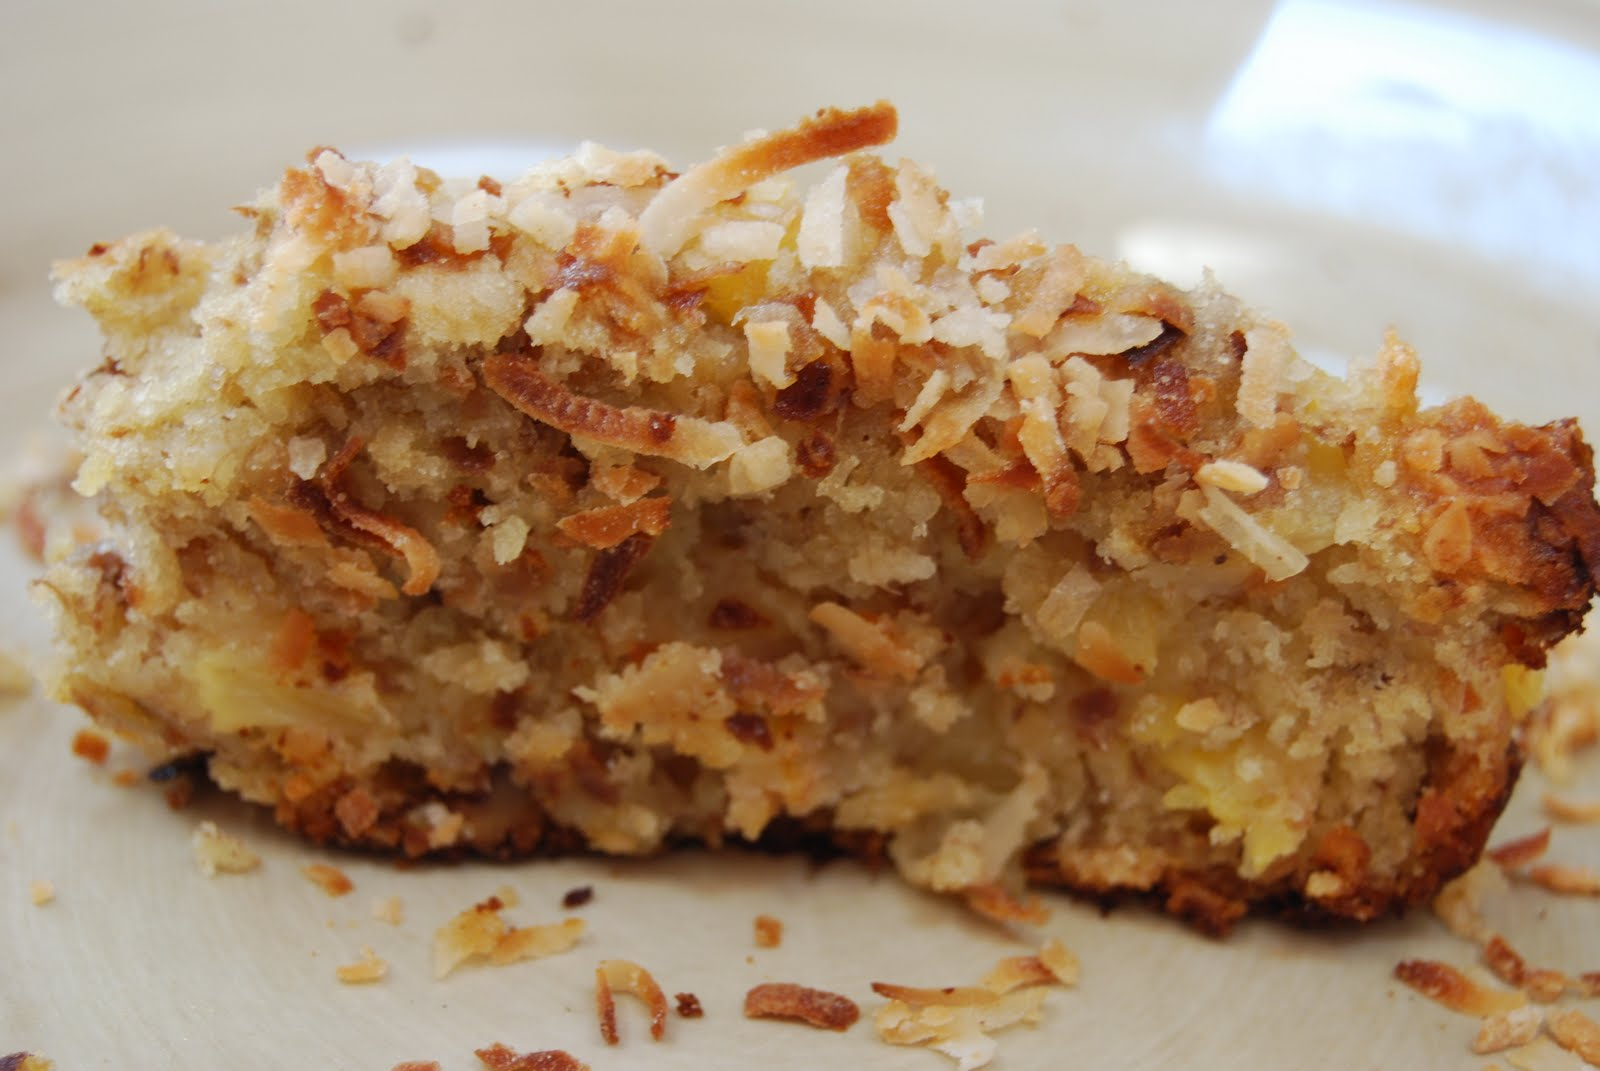 Toasted Coconut Pineapple Banana Bread - Macaroni and Cheesecake